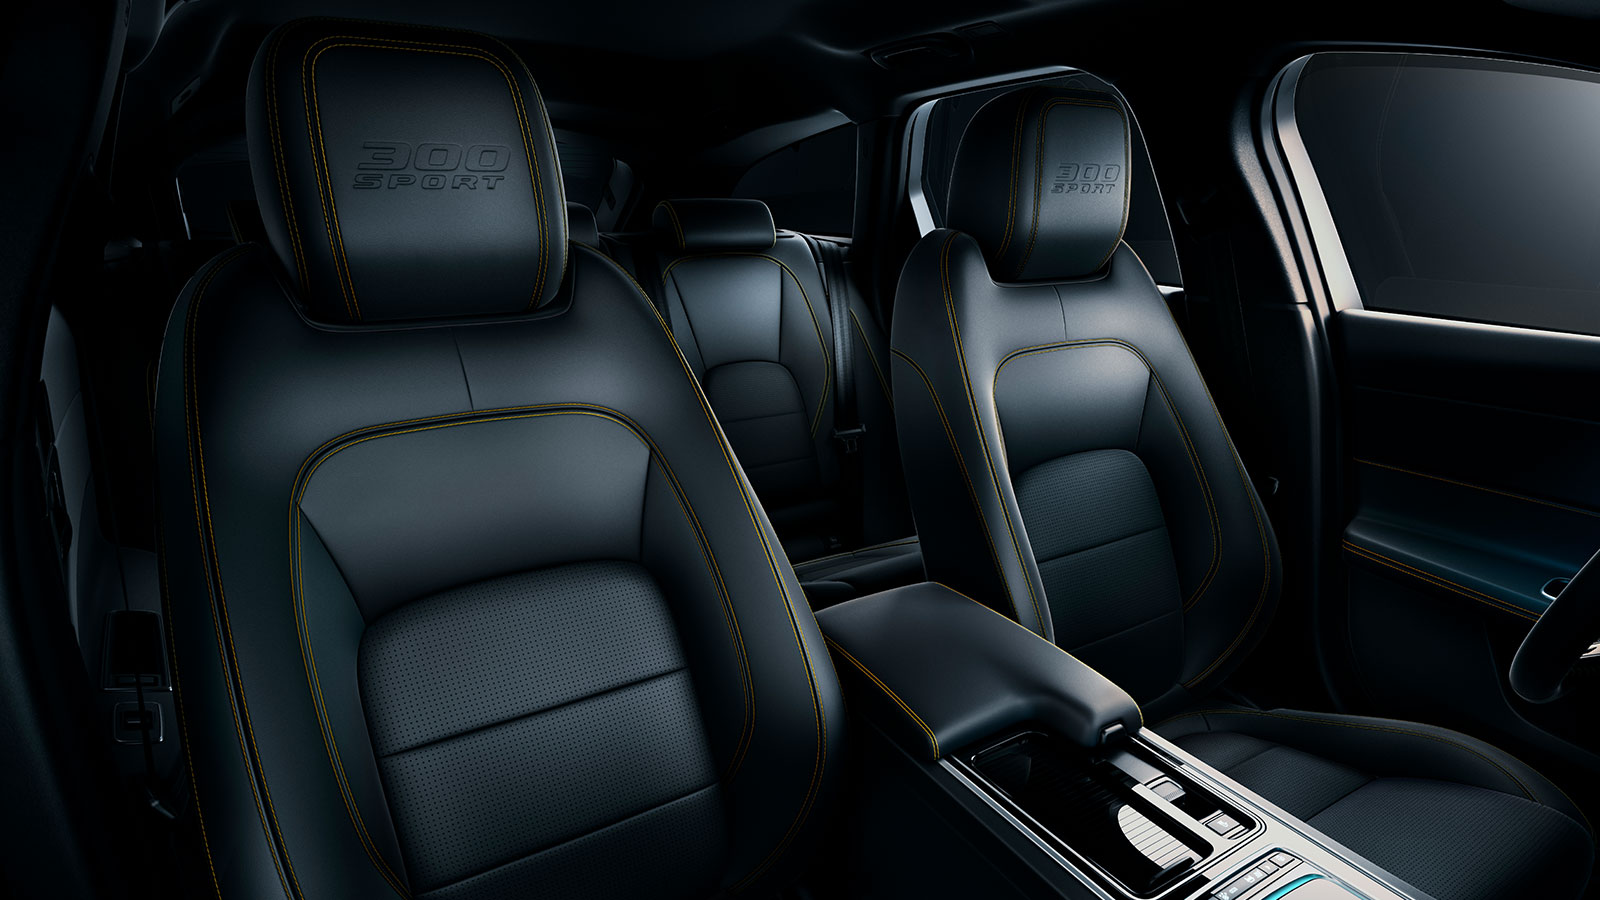 Jaguar XF 300 sport exterior - These 14-way sport seats feature distinctive Yellow stitching and 300 SPORT embossing.